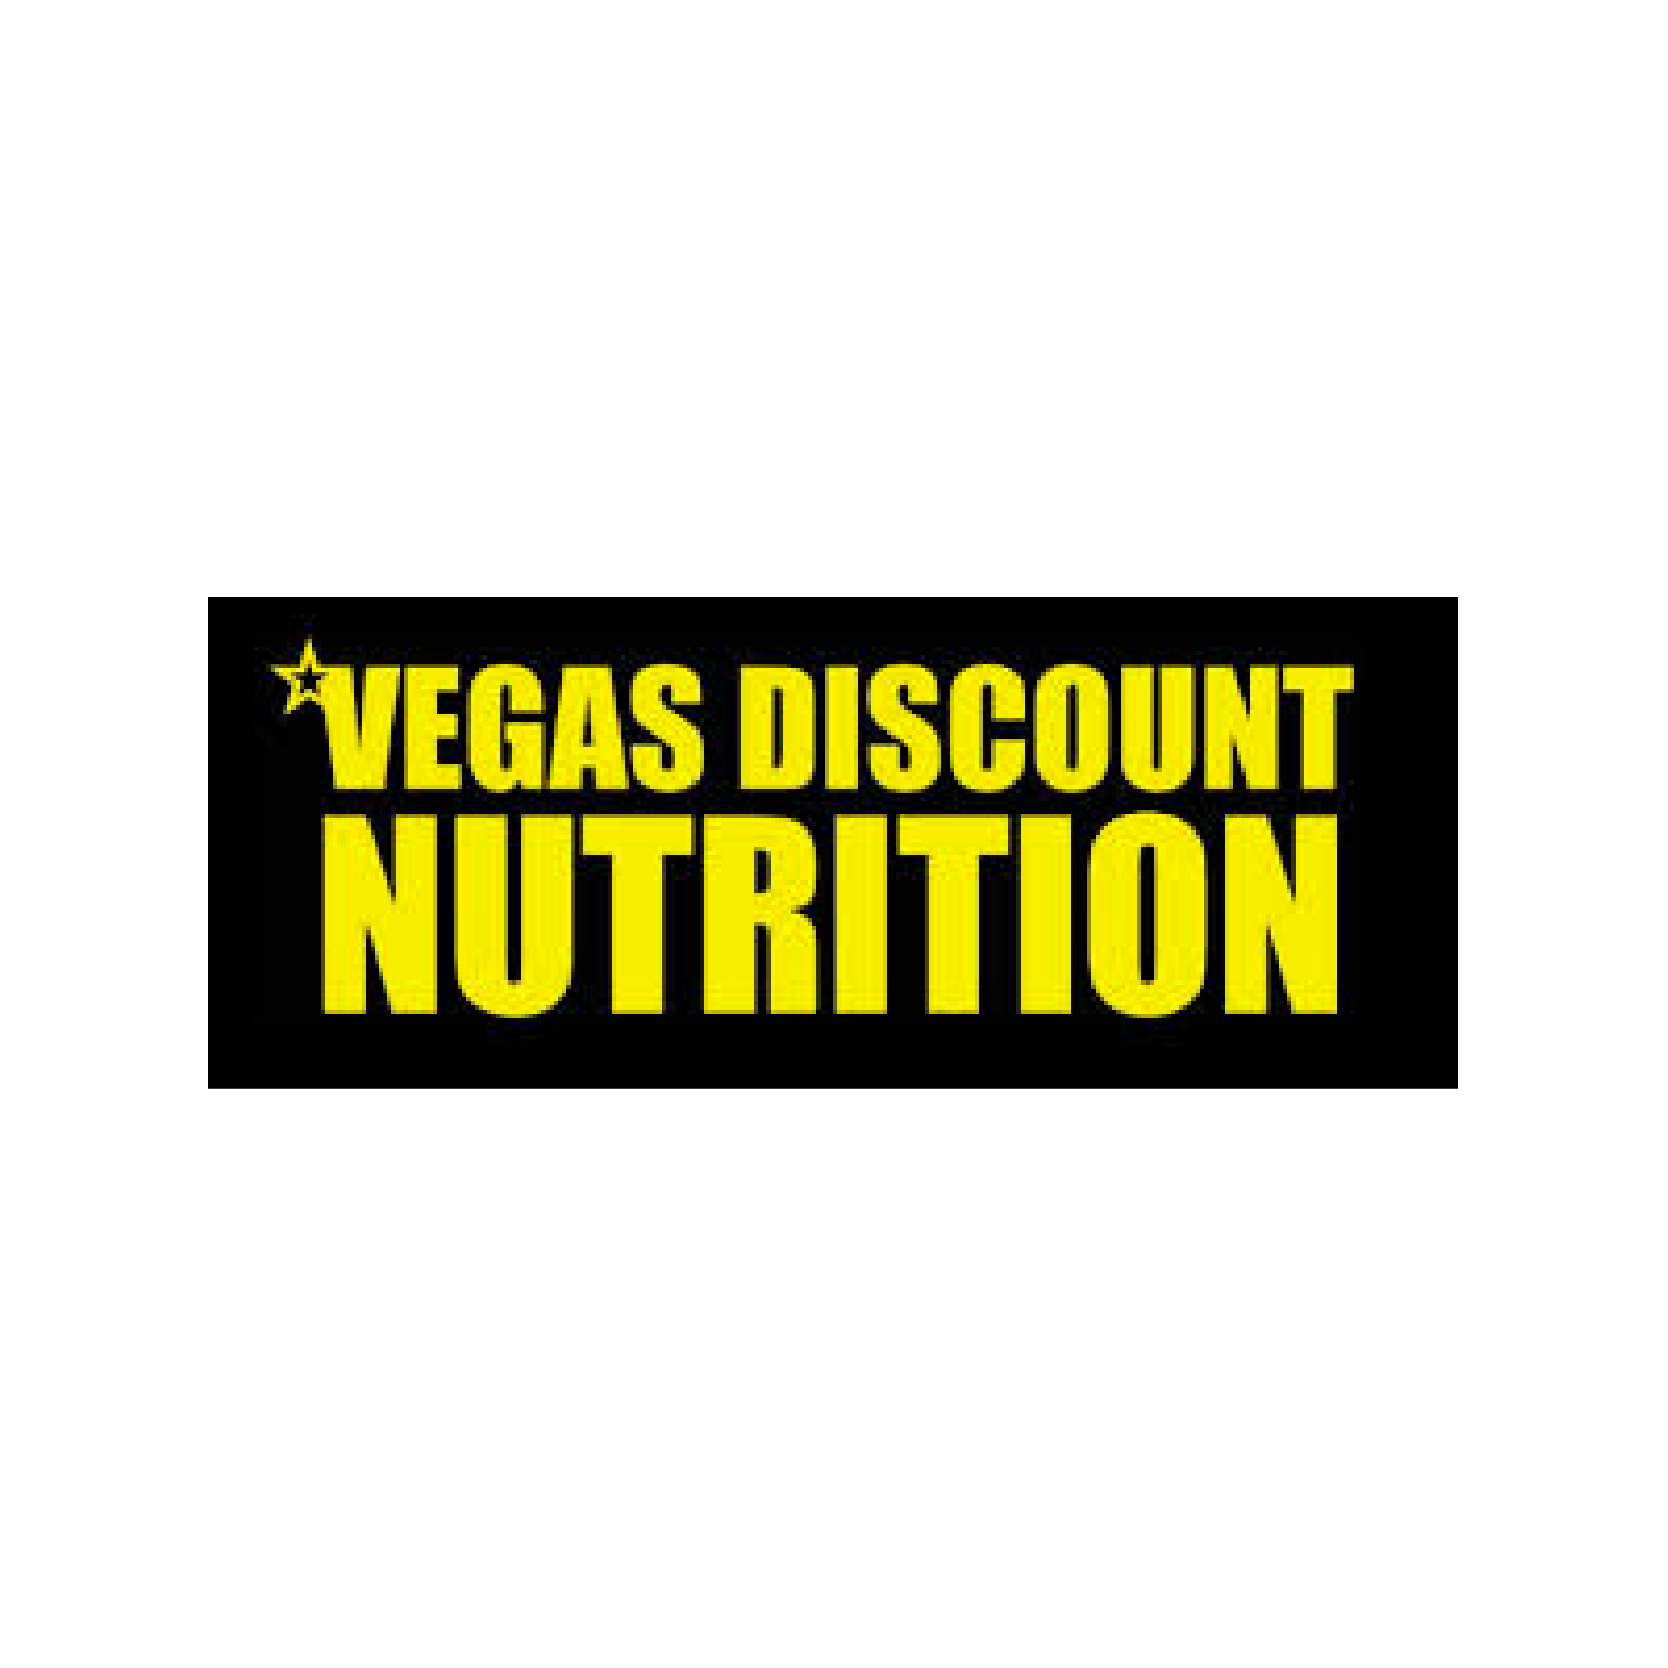 Vegas Discount Nutrition